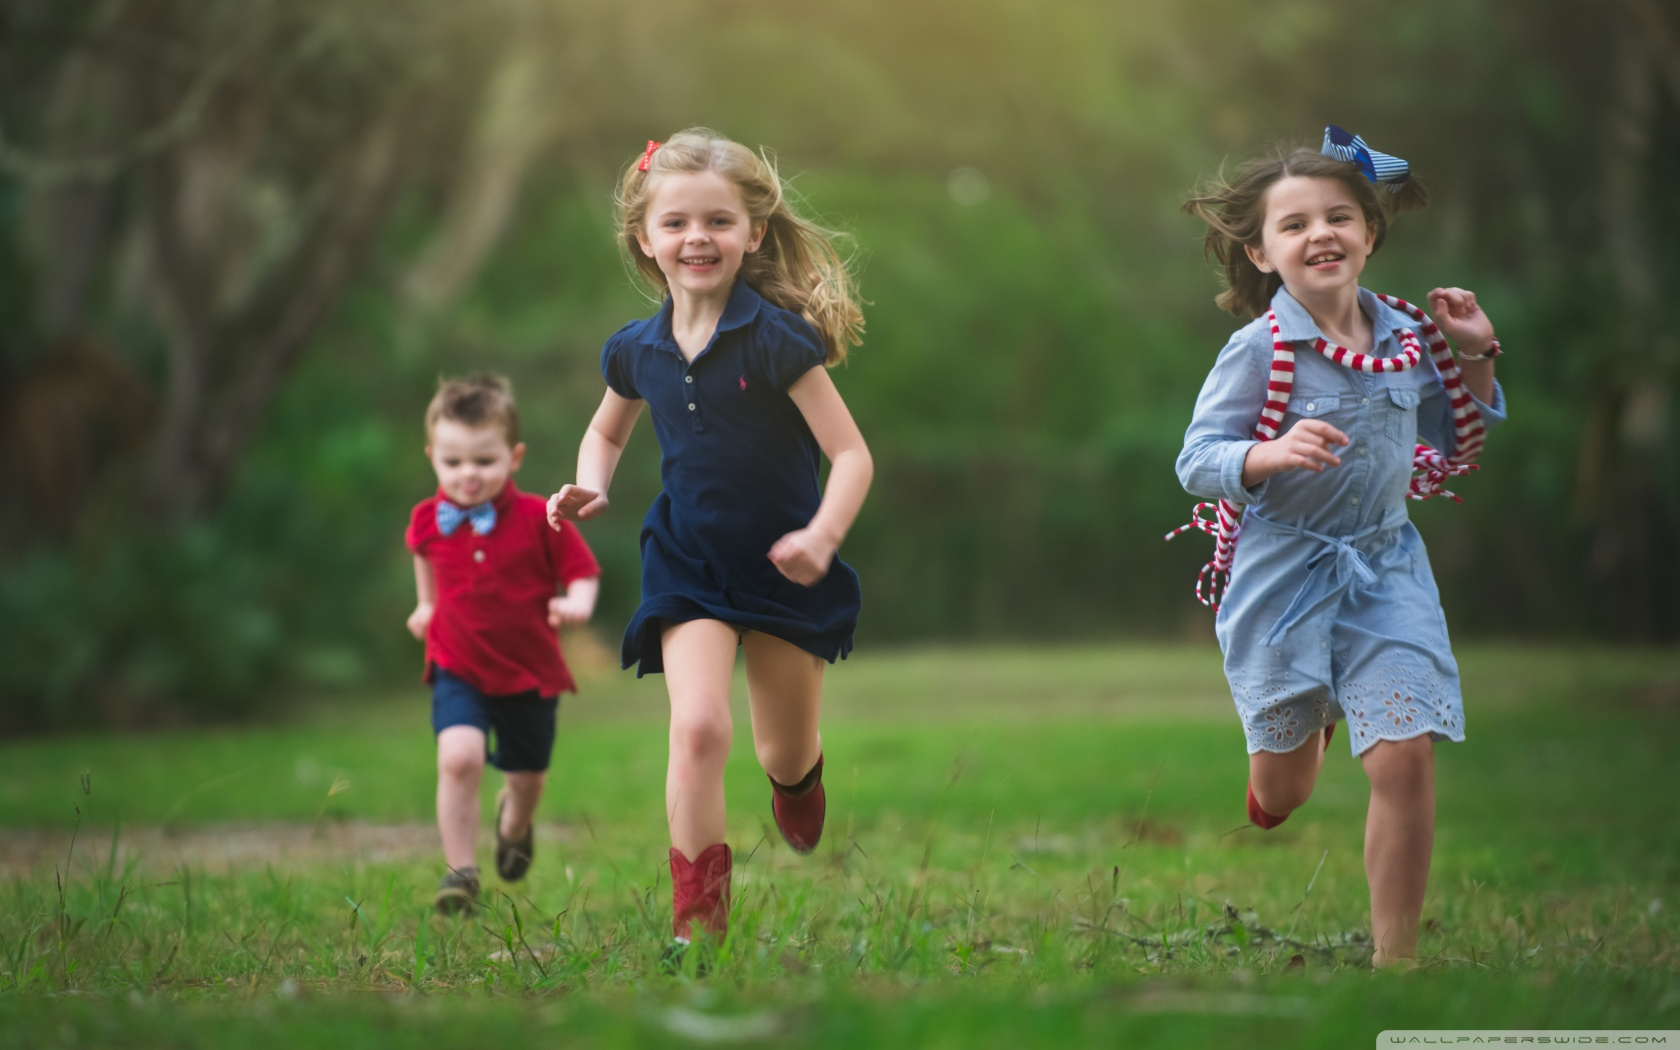 Children living happy lives with positive psychology.